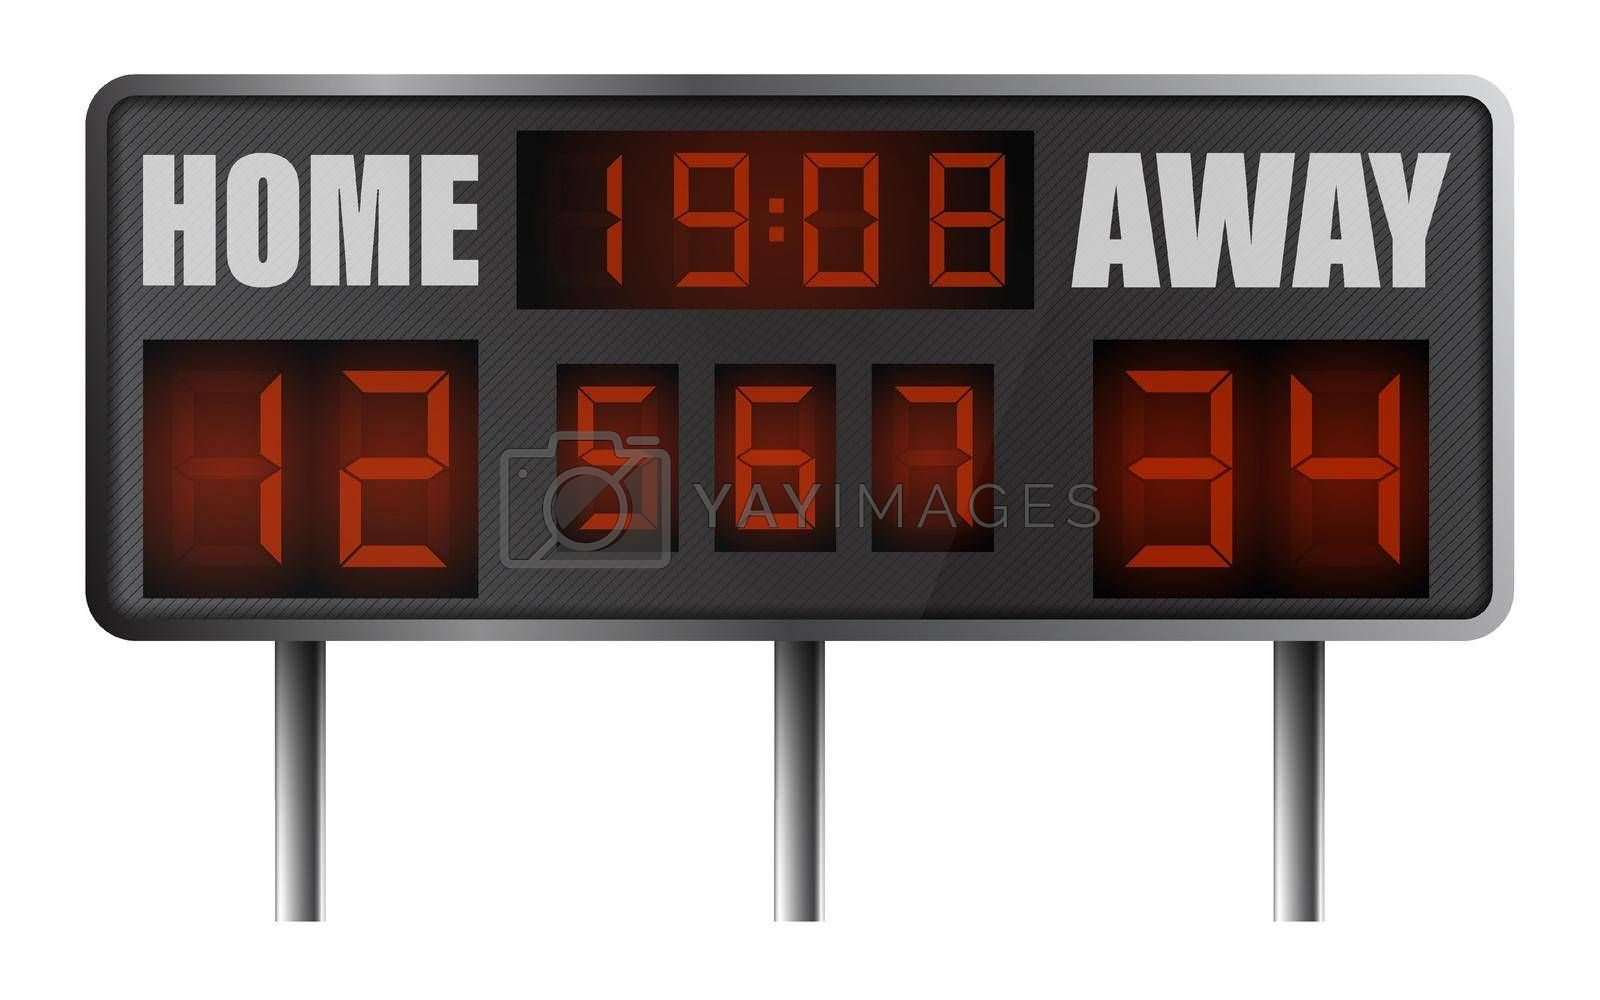 realistic electronic sports scoreboard. Score on board during match on field. Team sports. Active lifestyle. Vector